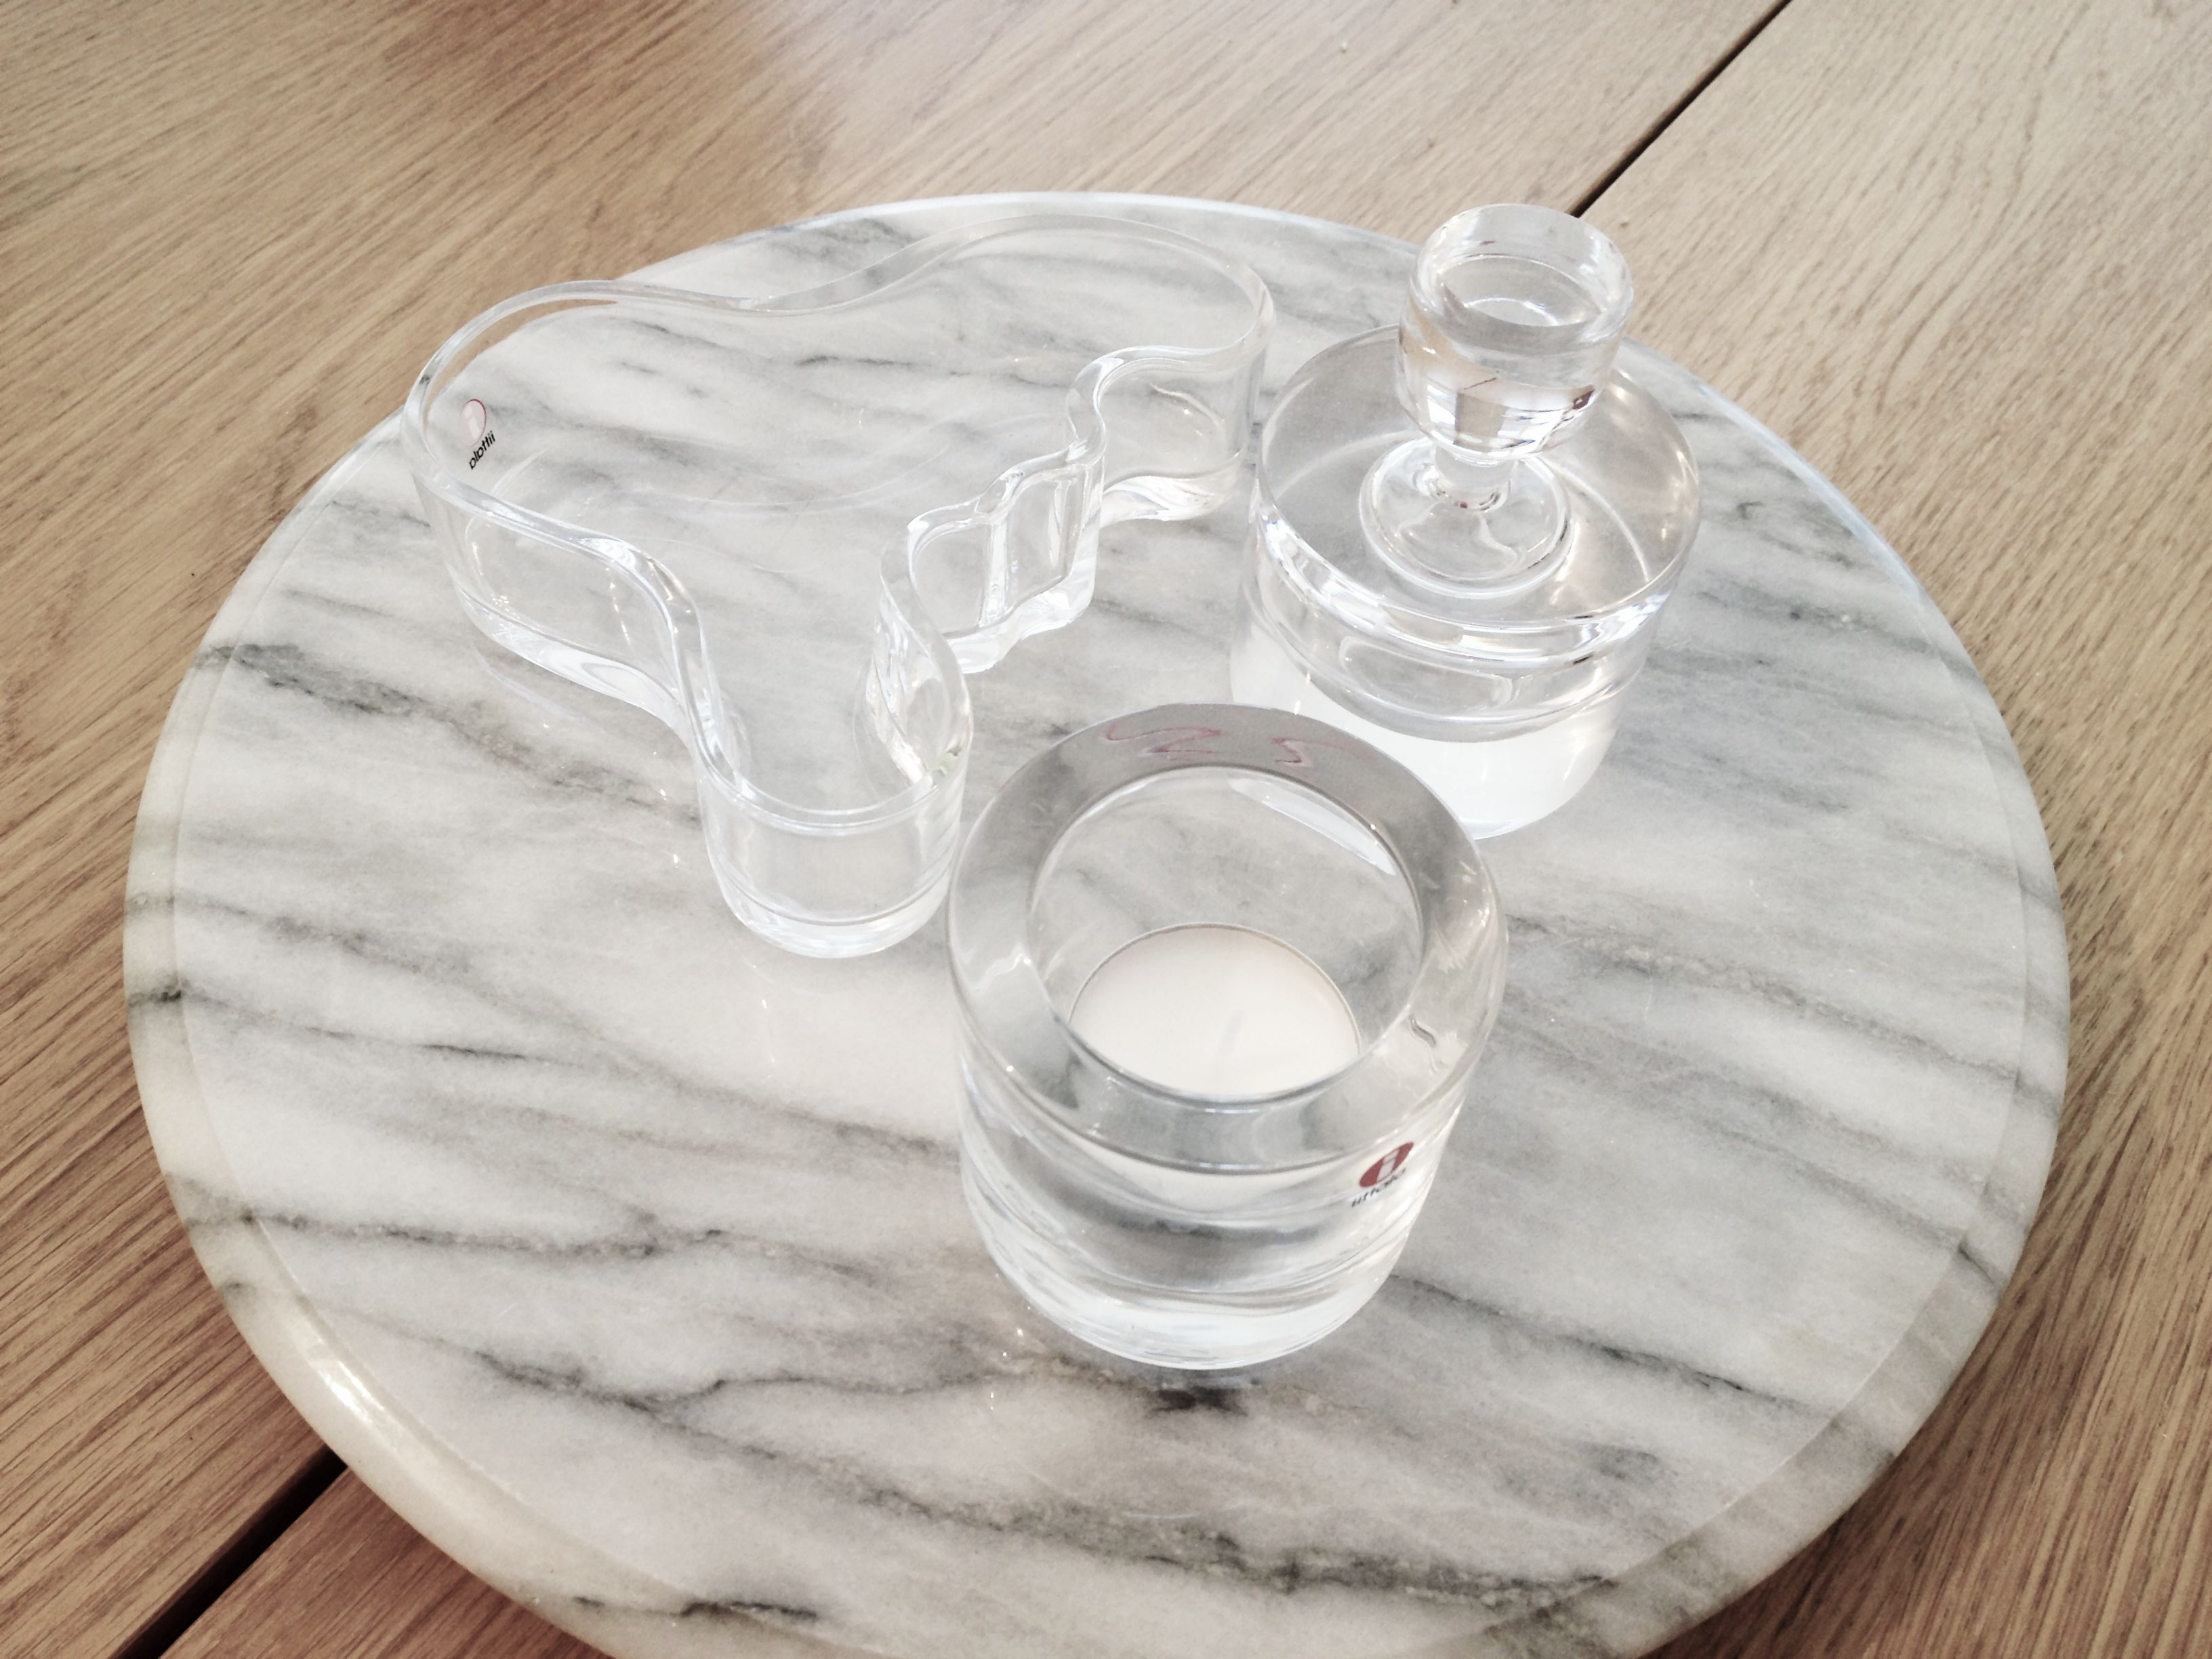 Marble Spinning Tray And Iitala Glass Art Kivi And Alvar